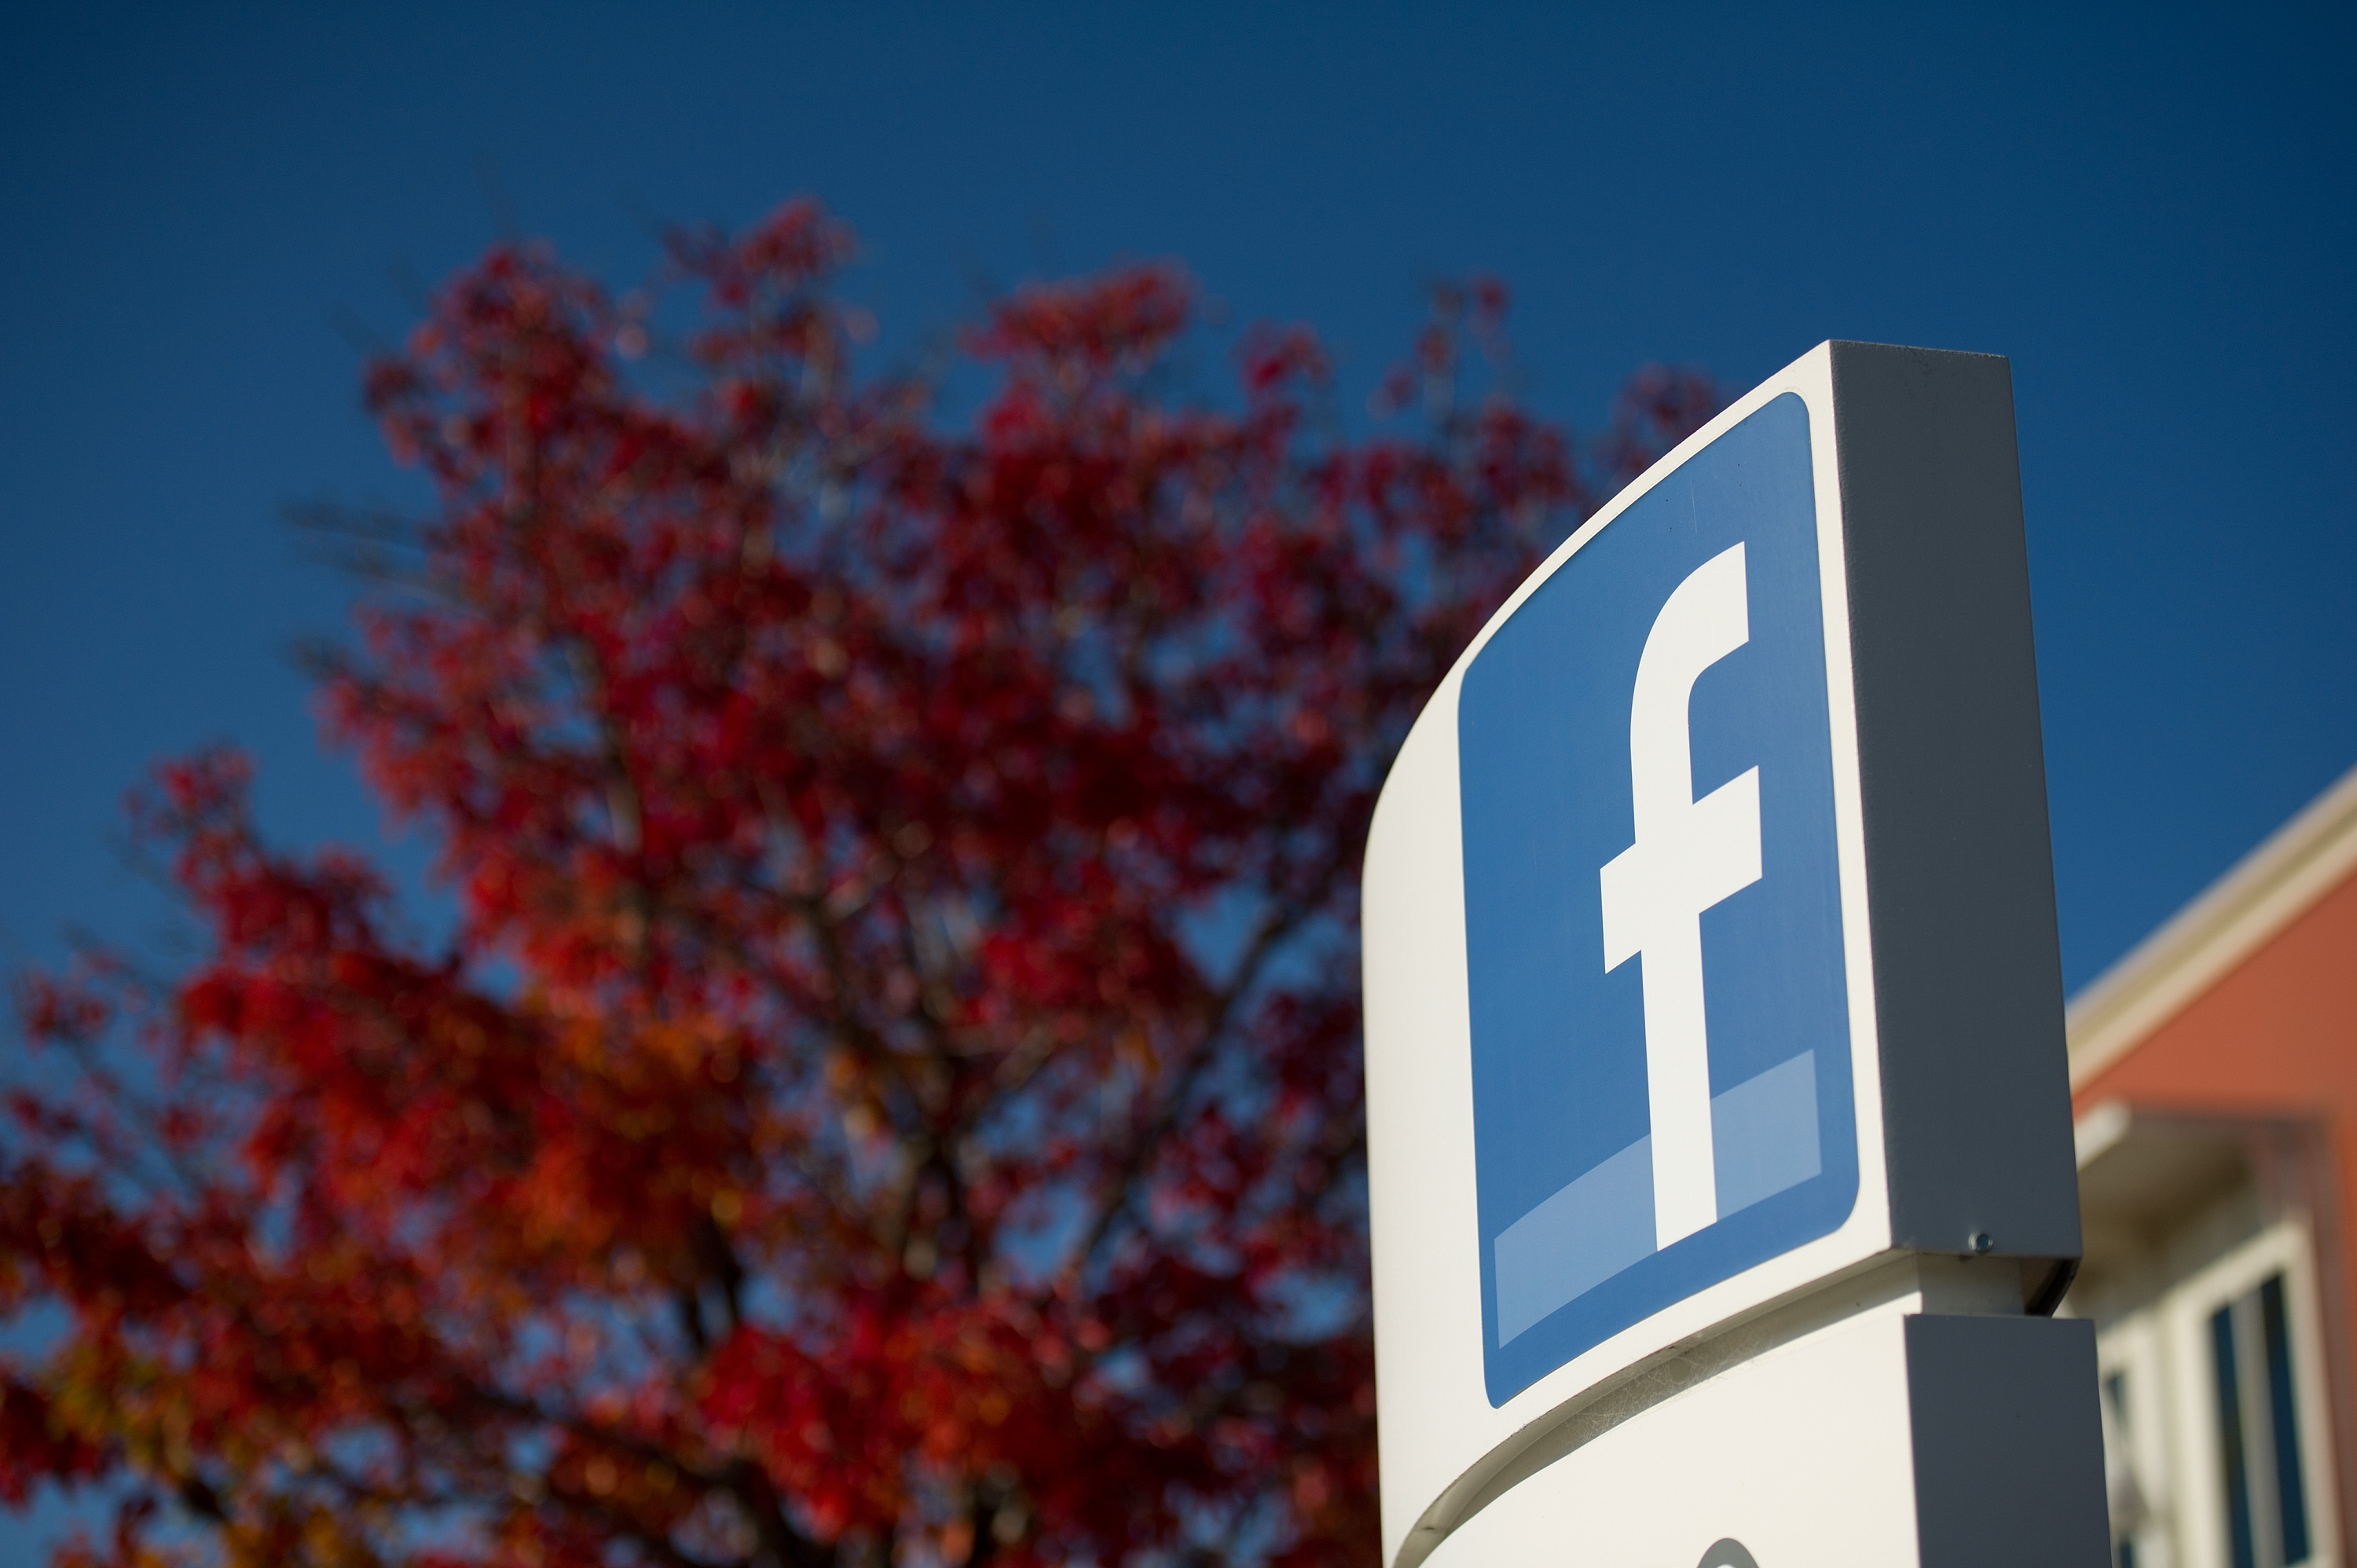 Facebook Inc. signage is displayed outside the company's campus in Menlo Park, California, on Friday, Dec. 2, 2011. On Thursday, Sept. 19, 2019, the company confirmed an employee died in an apparent suicide after jumping from the fourth floor of a building at its headquarters.